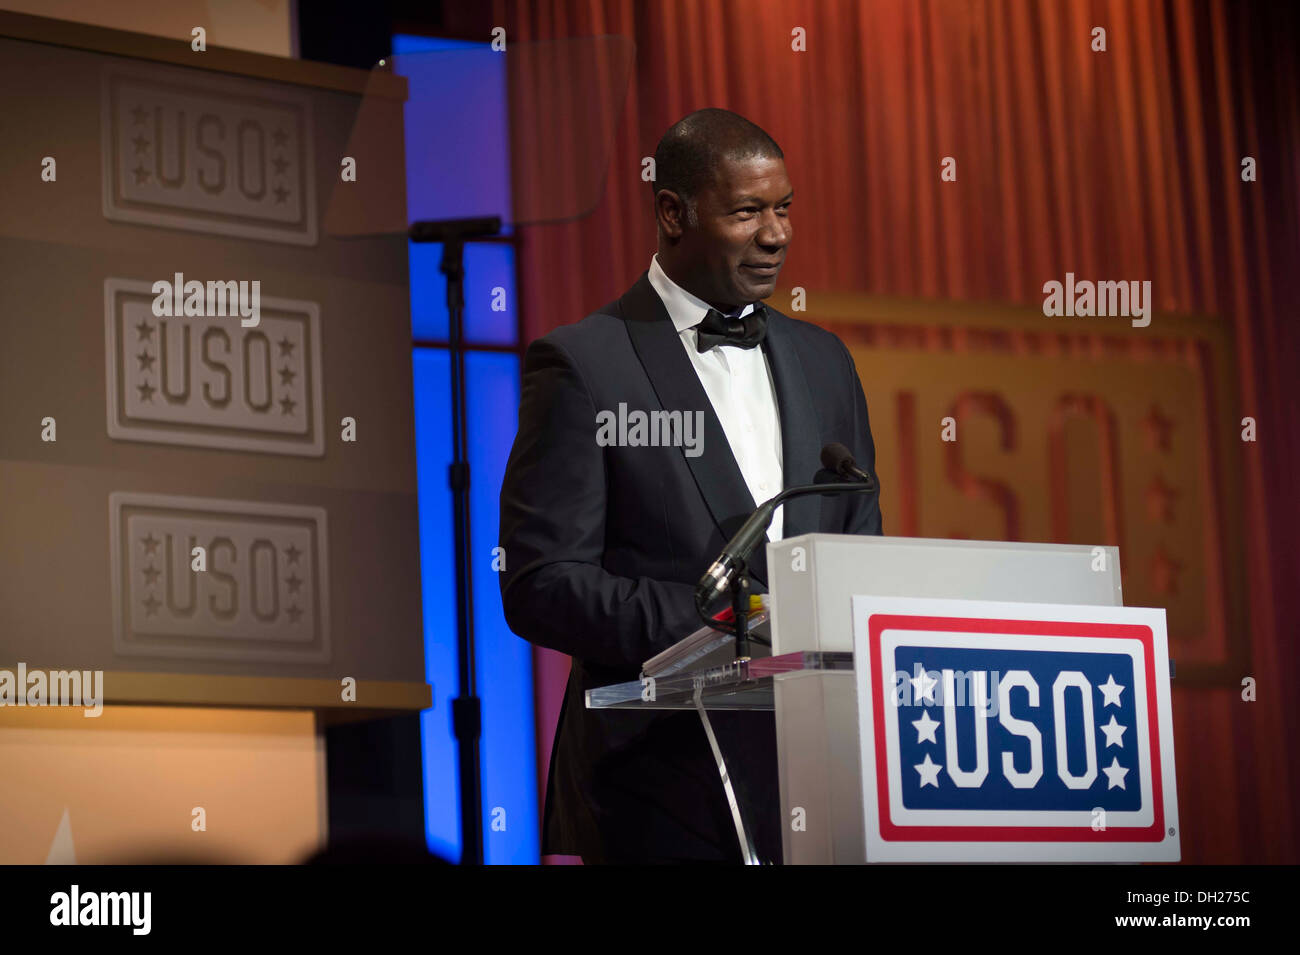 Actor and long-time USO supporter and volunteer Dennis Haysbert serves as the master of ceremonies of the 2013 USO Gala in Washi - Stock Image